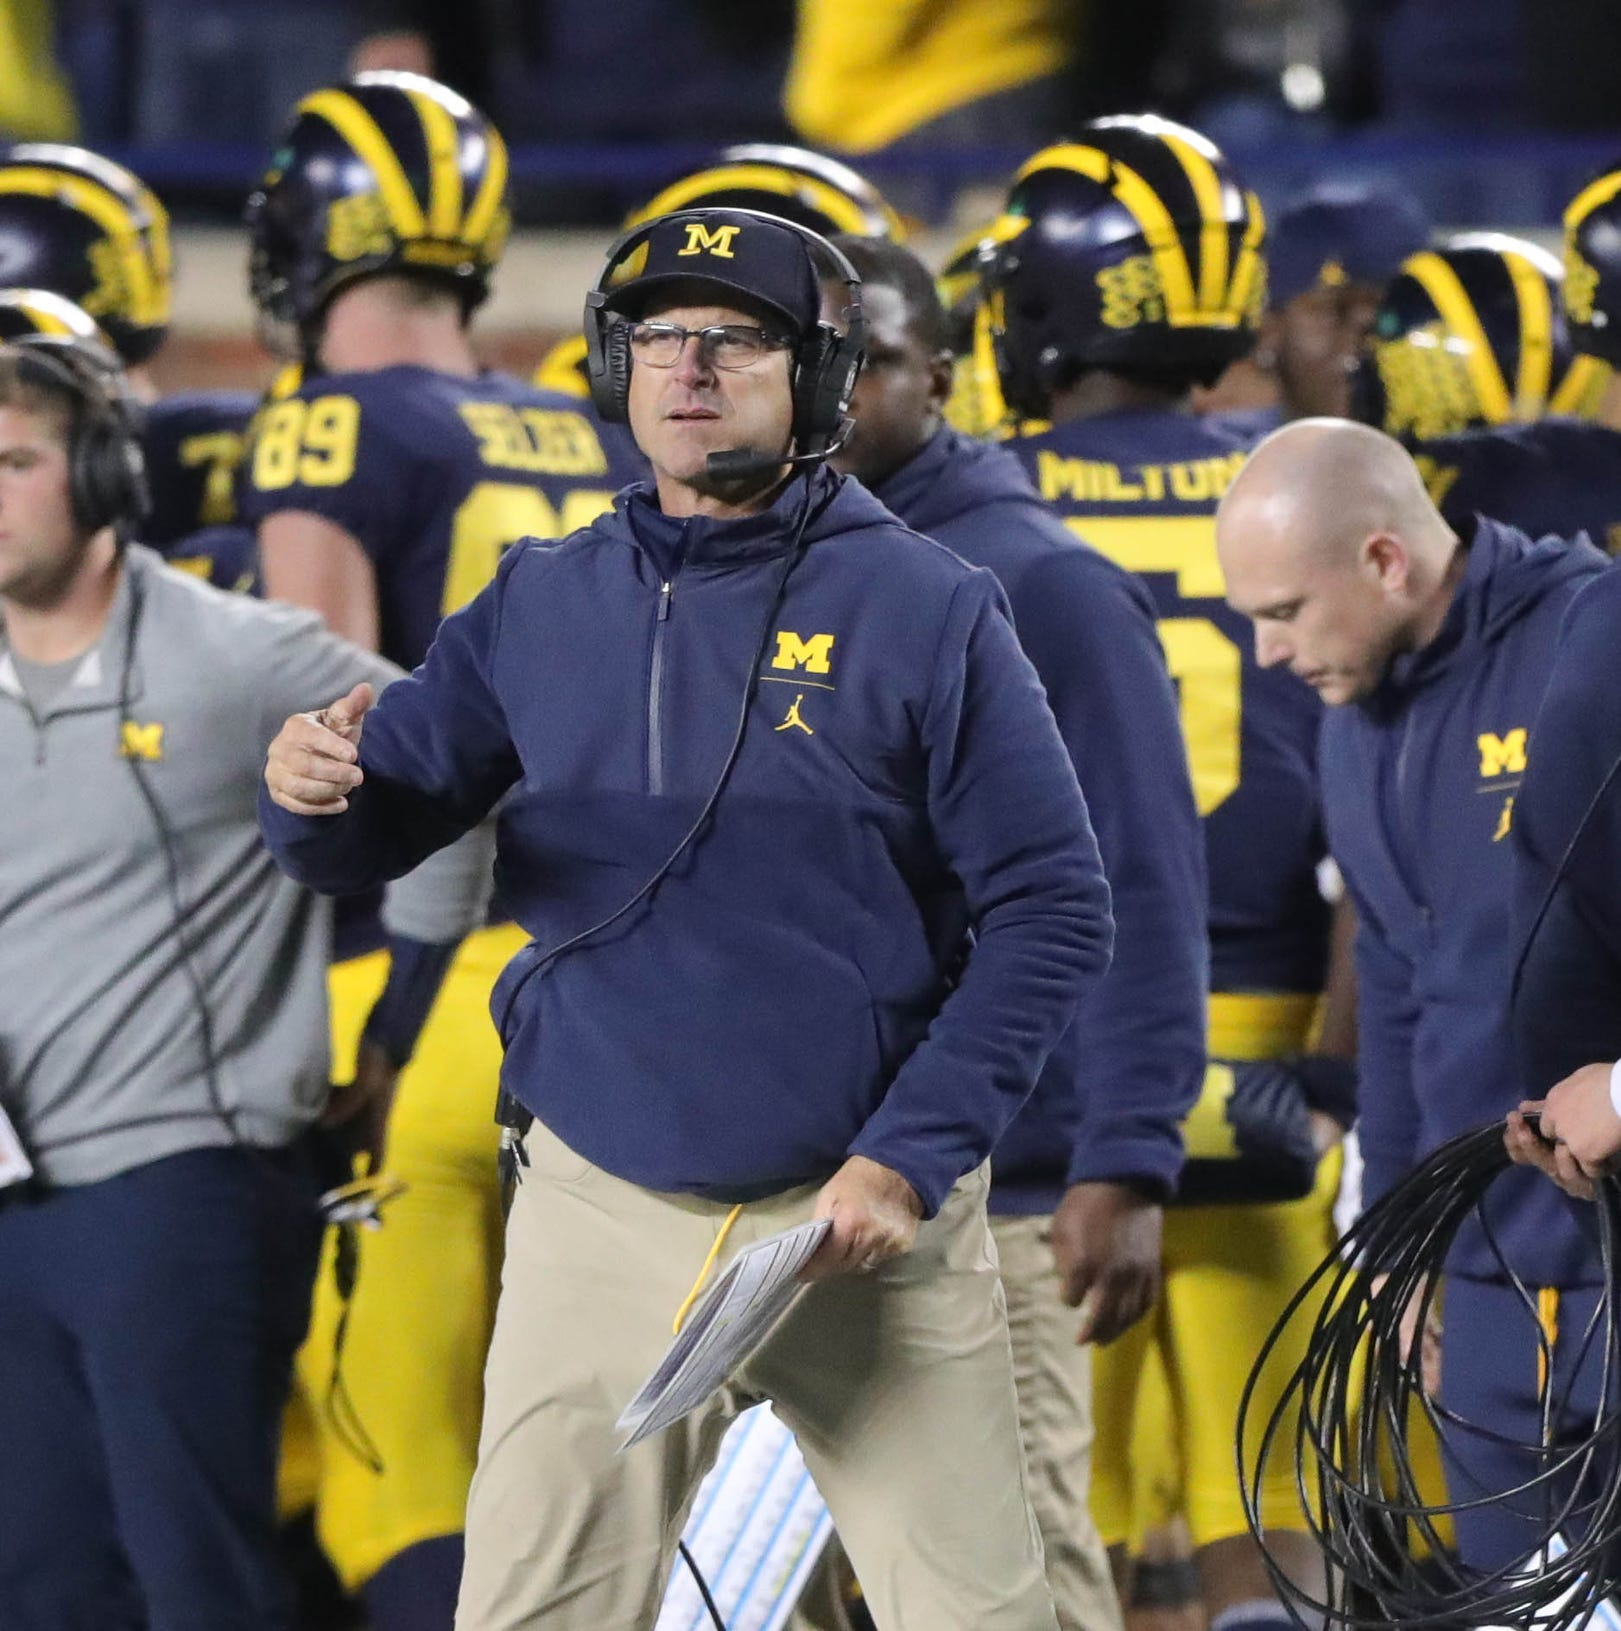 Jim Harbaugh: We could all use a break from Michigan-MSU trash talk